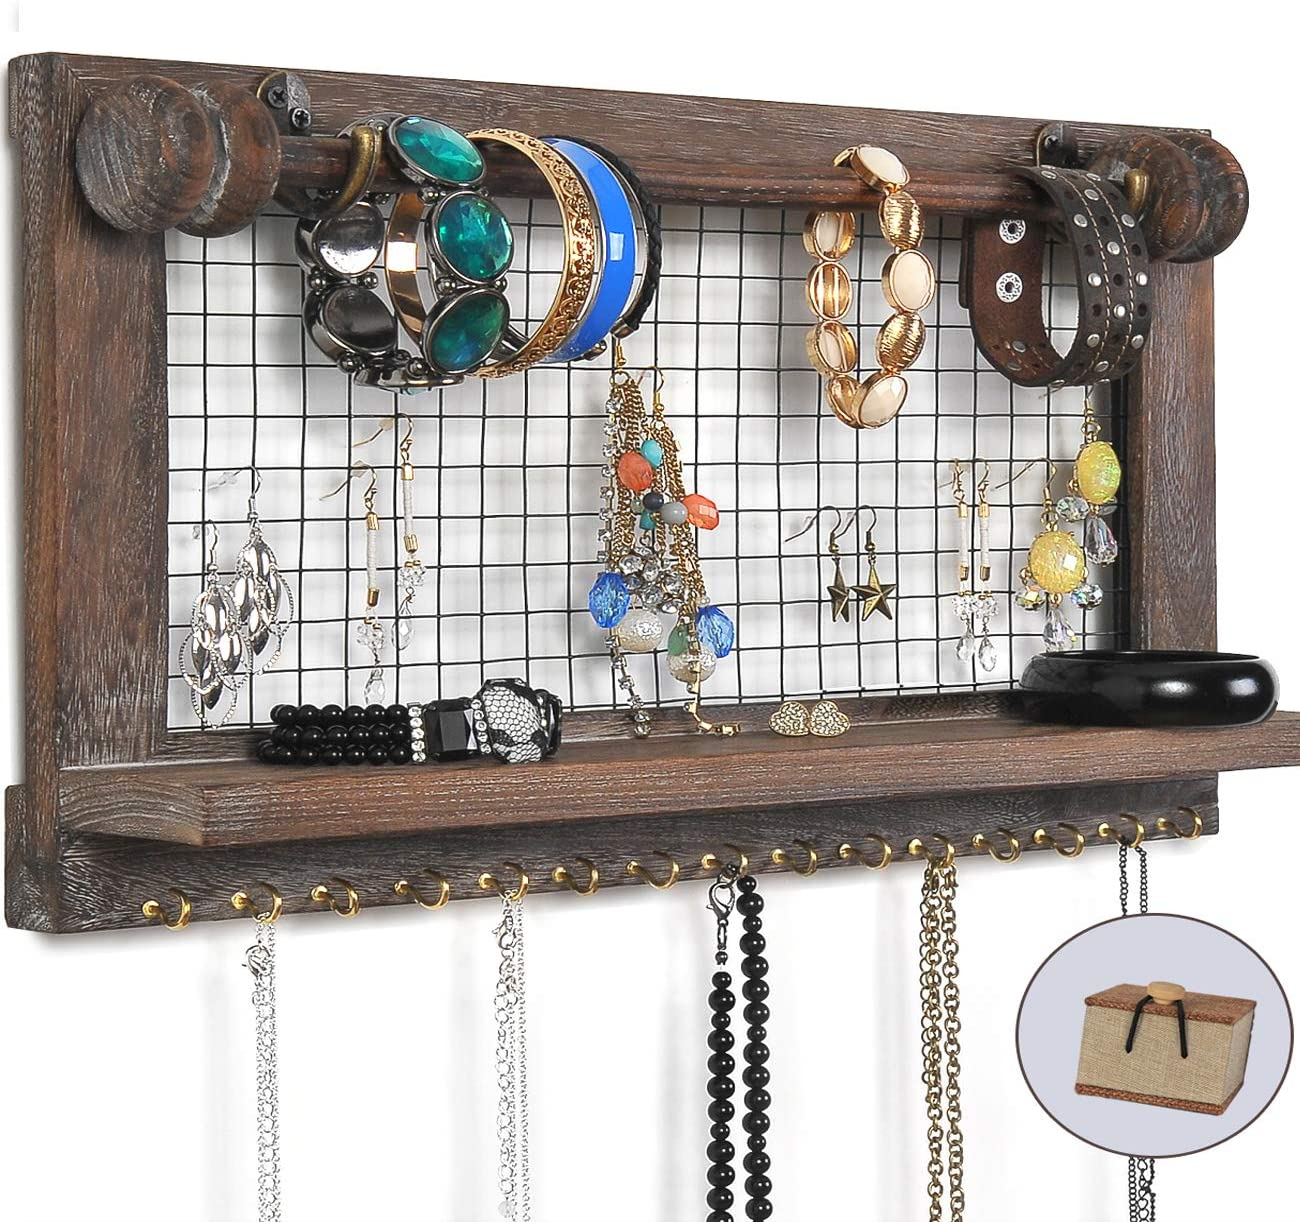 VIEFIN Rustic Wall Mounted Jewelry Organizer, Wood Shabby Chic Earring Holder with Shelf, Hanging Hook for Necklace, Removable Rod for Bracelet(Rustic,Basic)